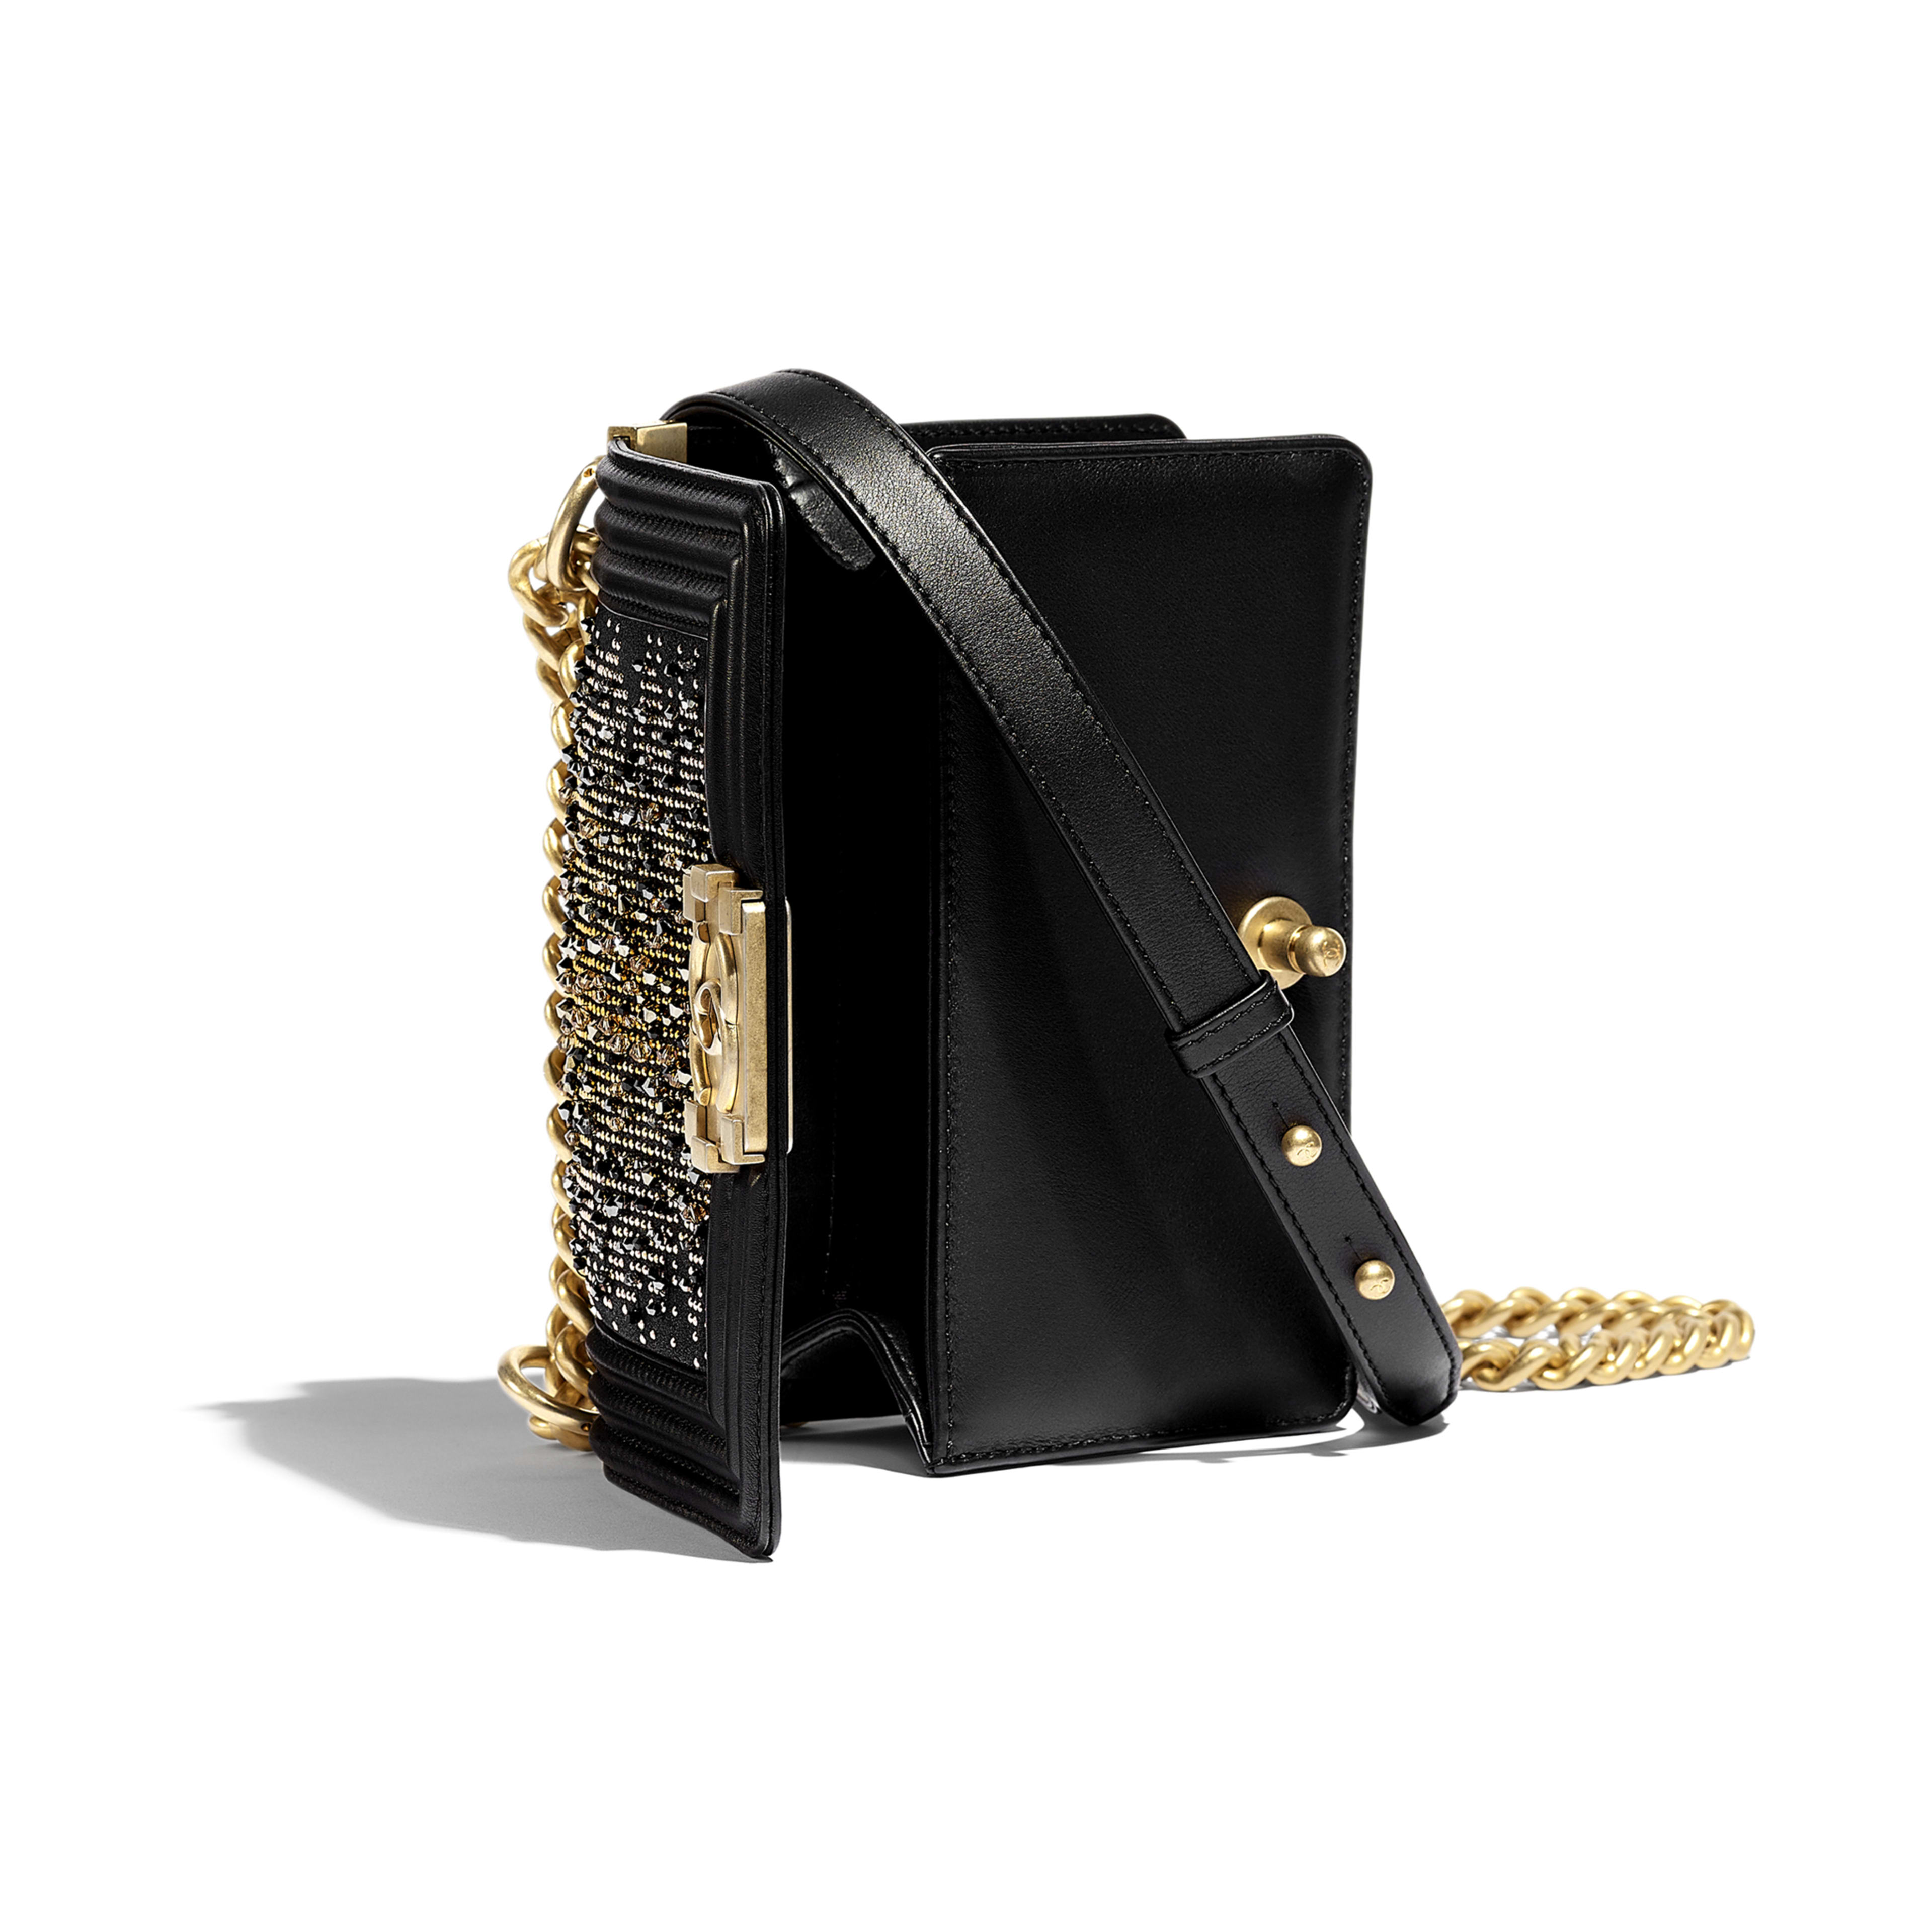 Small BOY CHANEL Handbag - Black - Calfskin, Strass & Gold-Tone Metal - Other view - see full sized version